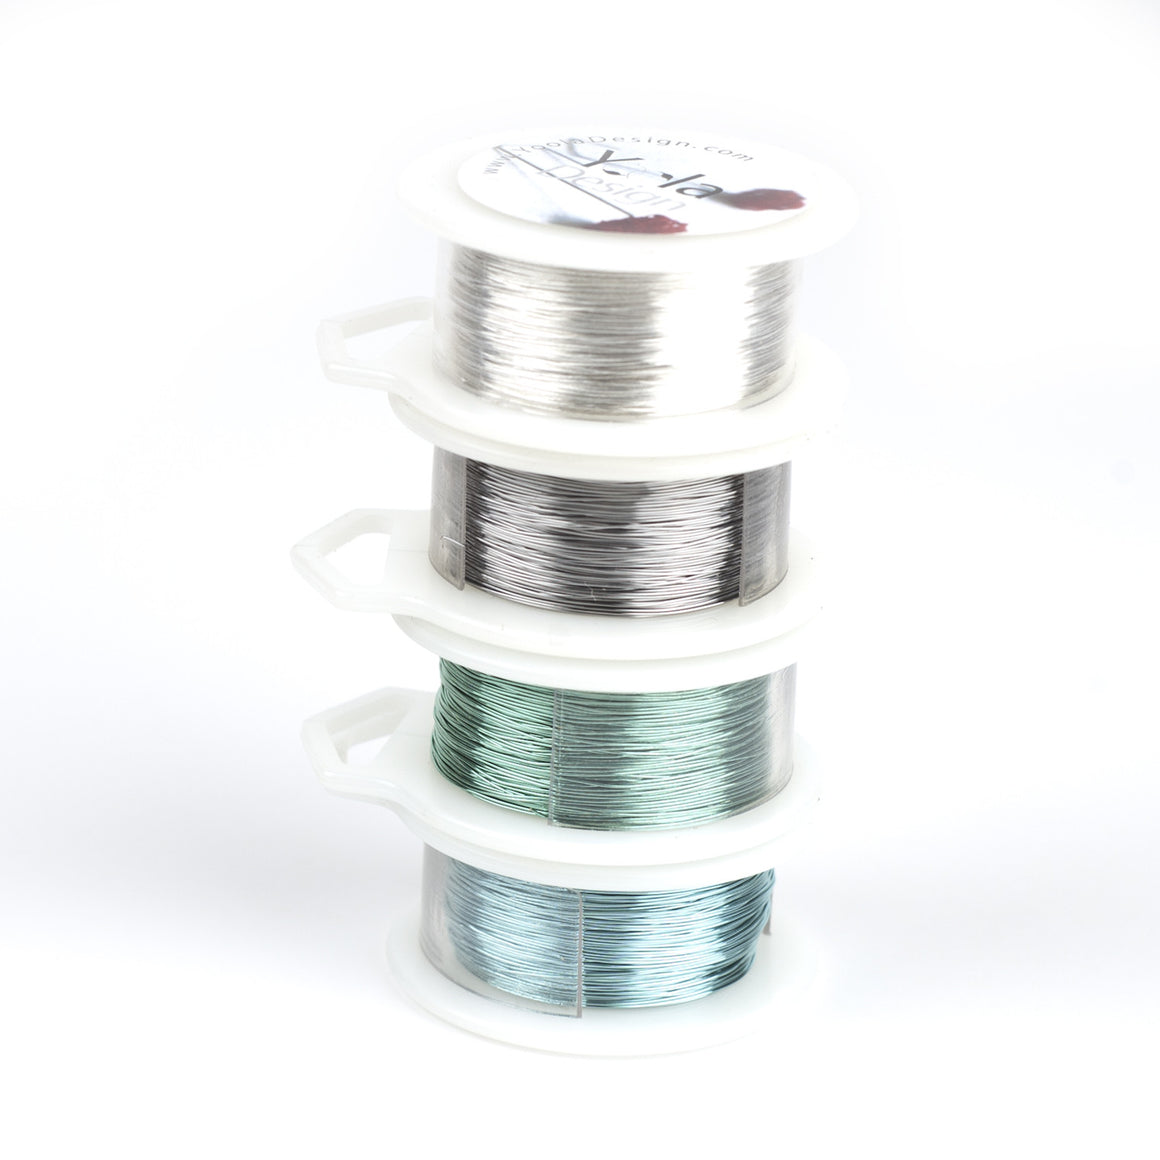 Craft Wire - BLUES - Extra long 4 spools - 120 feet each - Yooladesign